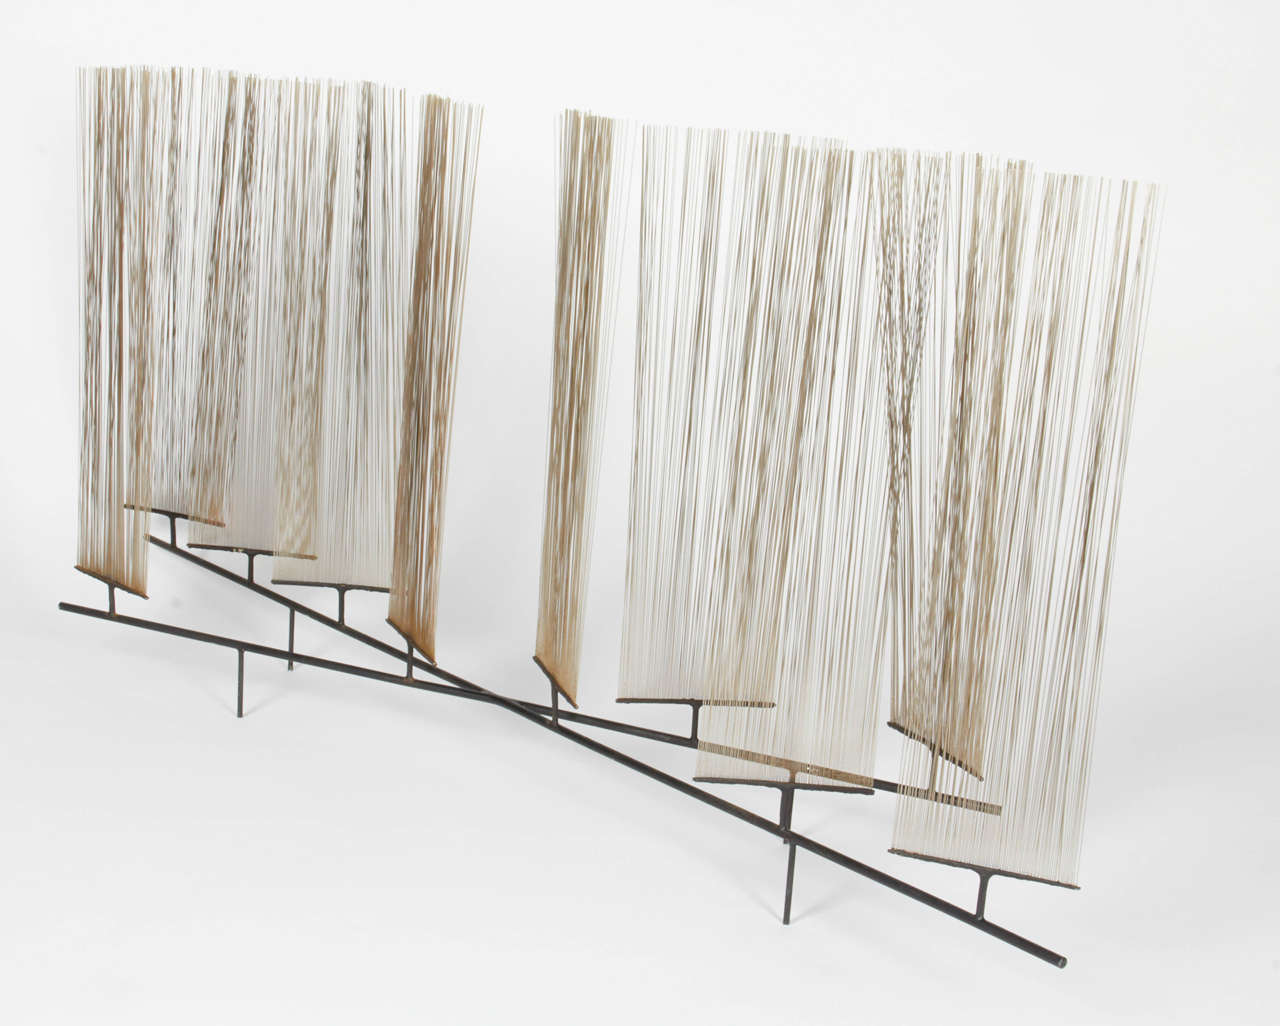 Harry Bertoia Early Wire Form Sculpture, Untitled 7